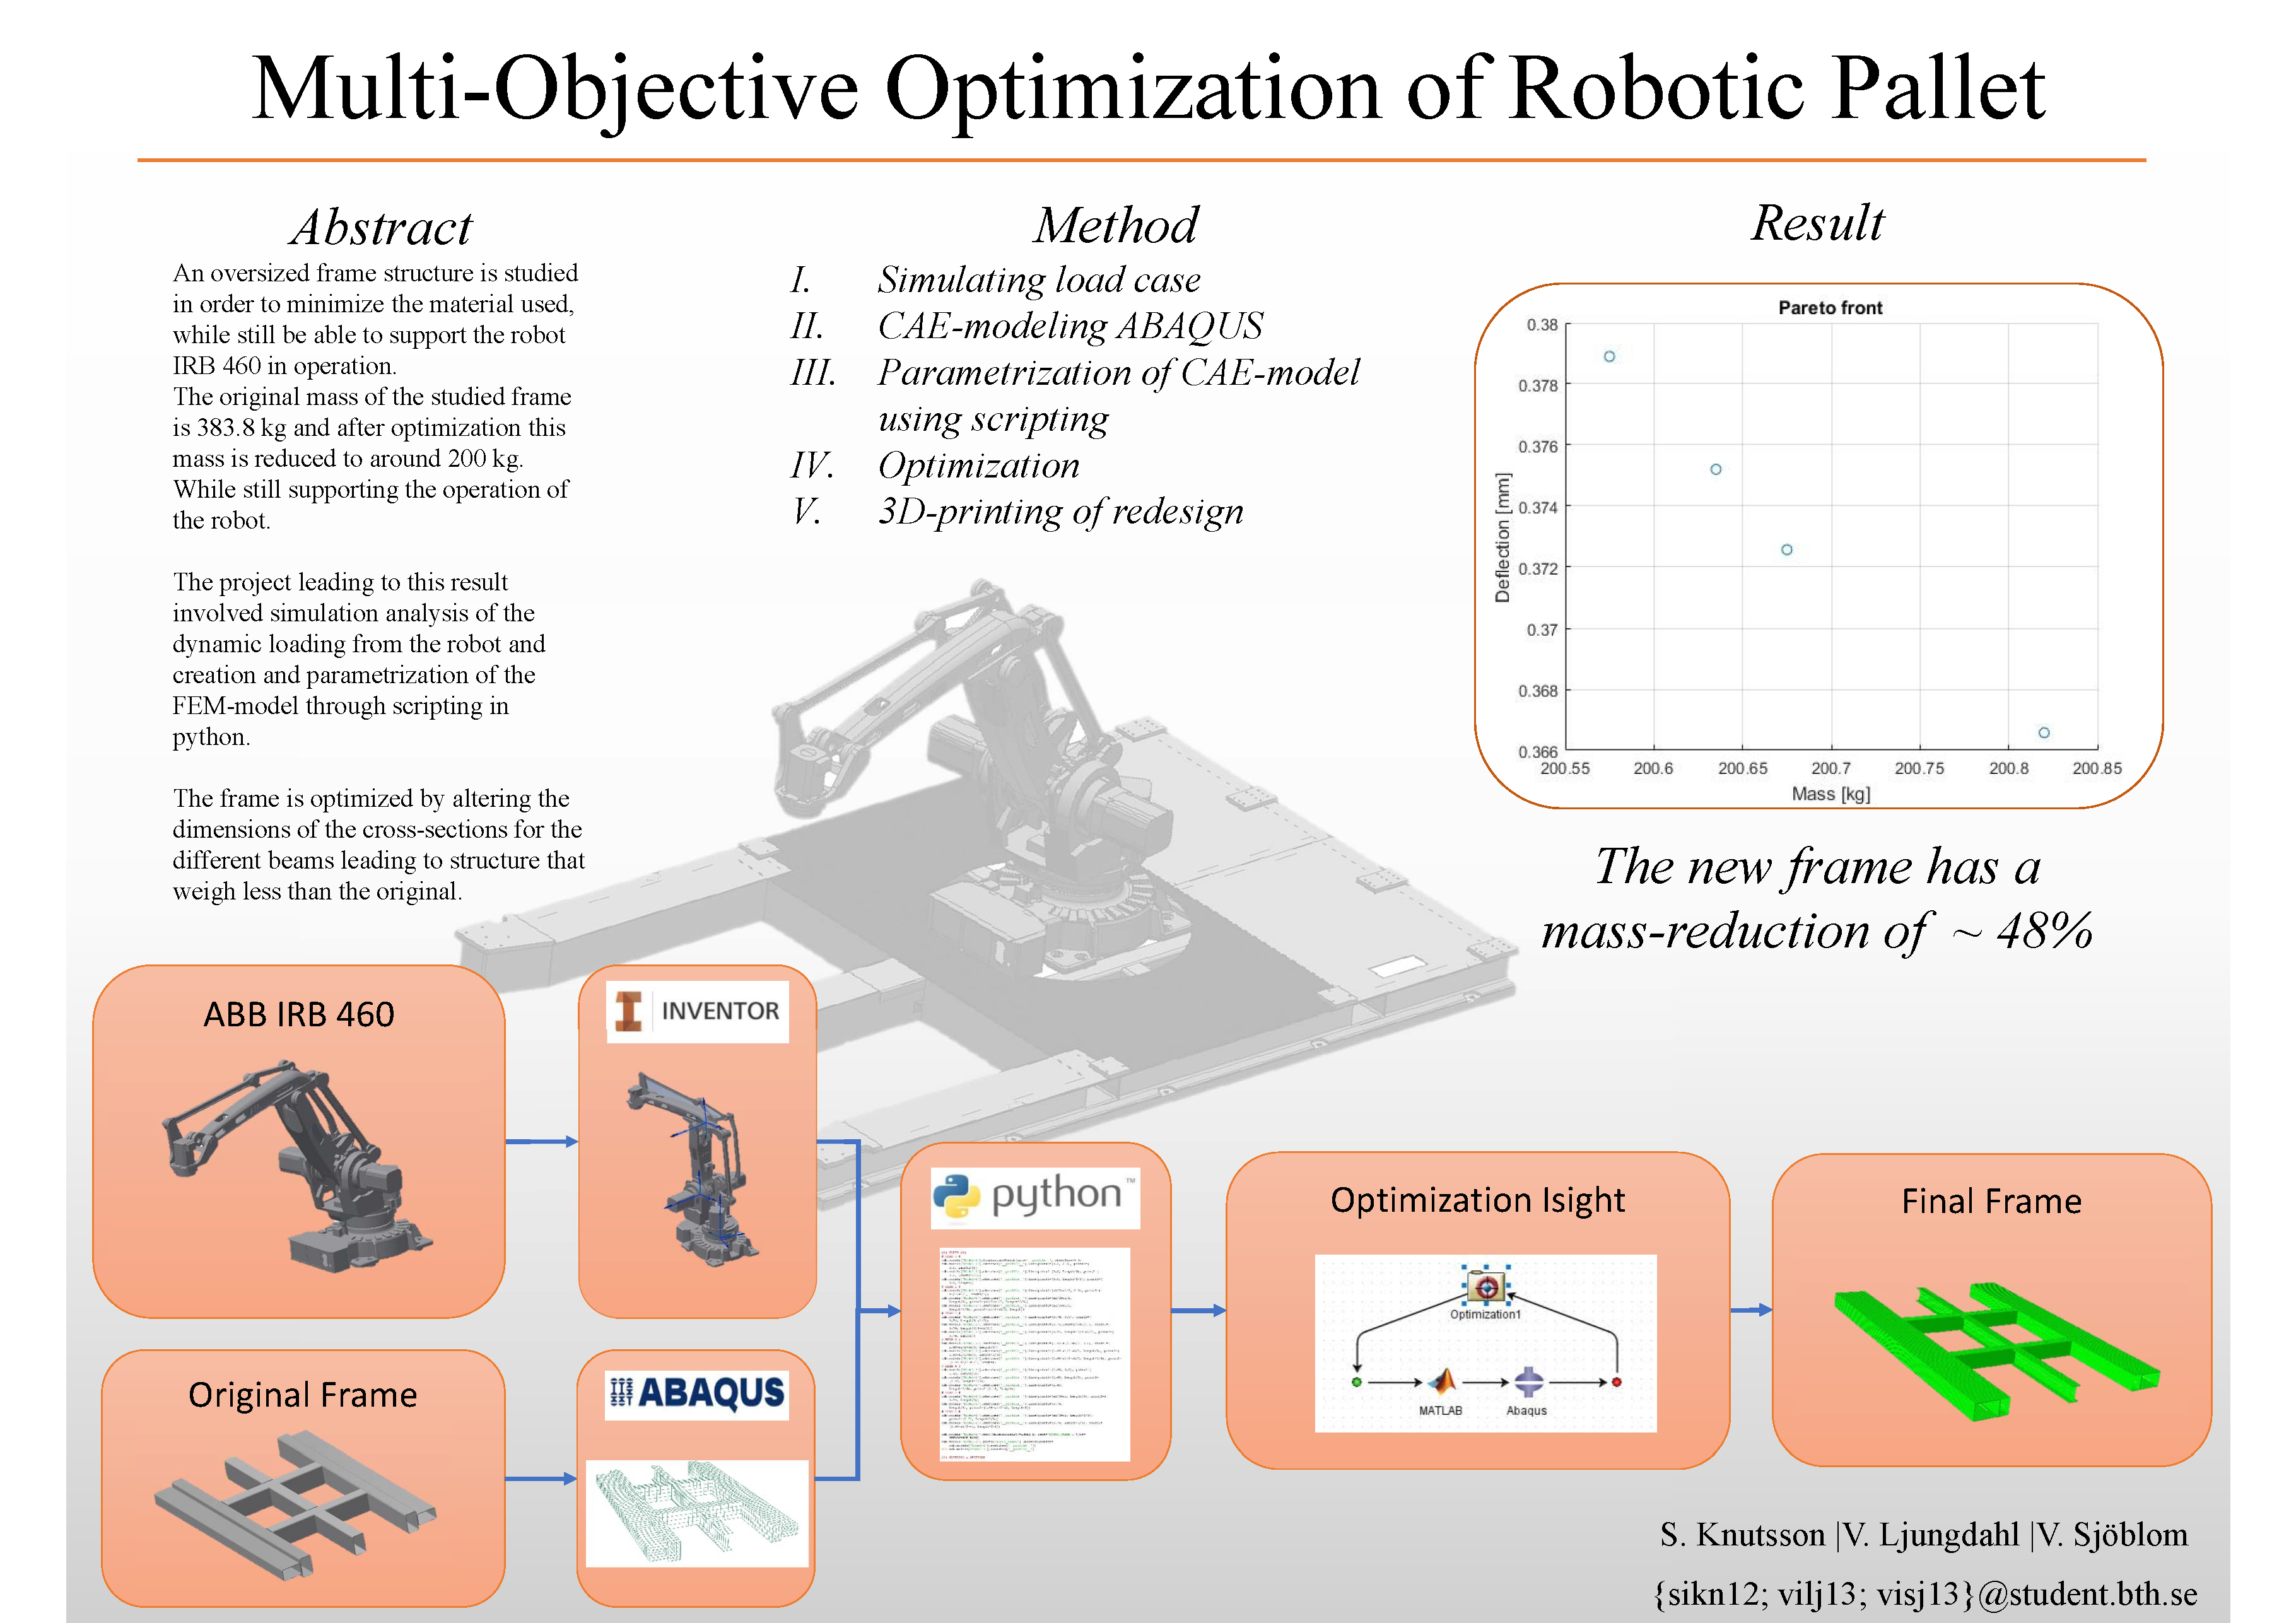 Multi-objective optimization of robotic pallet